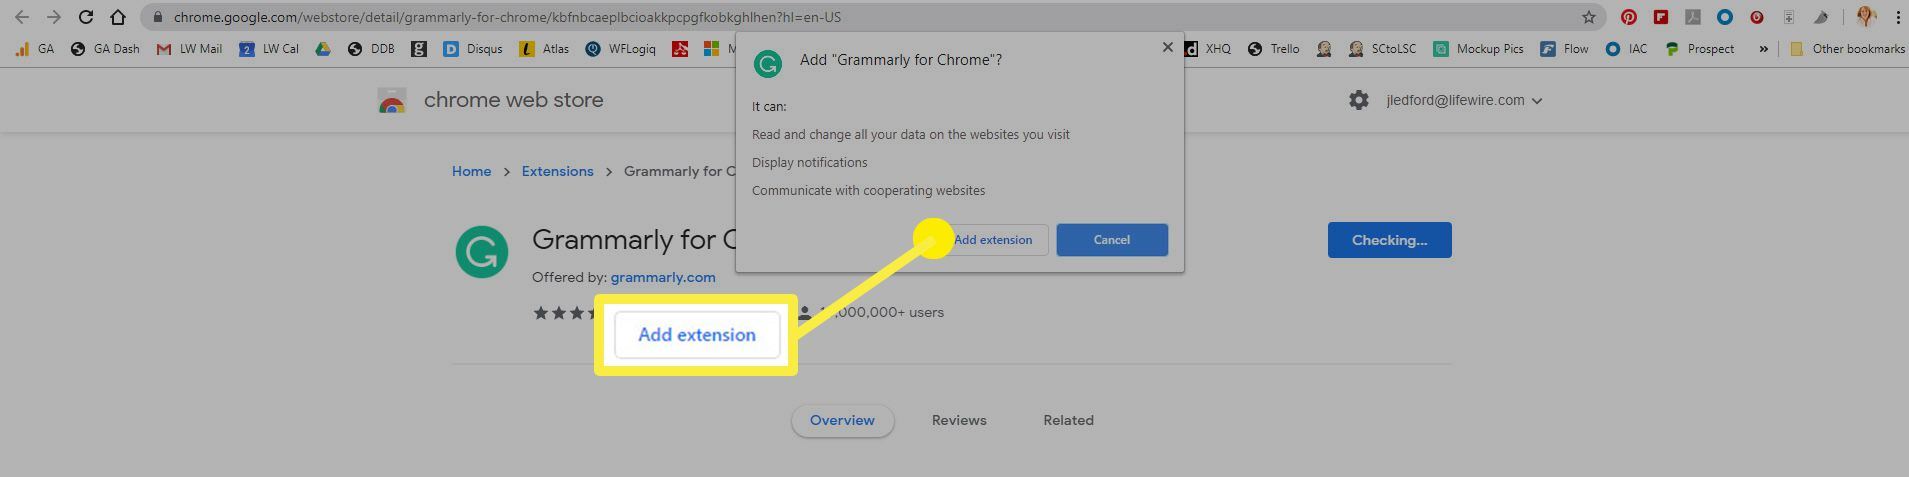 Confirm you want to add an extension in the Chrome Web Store.